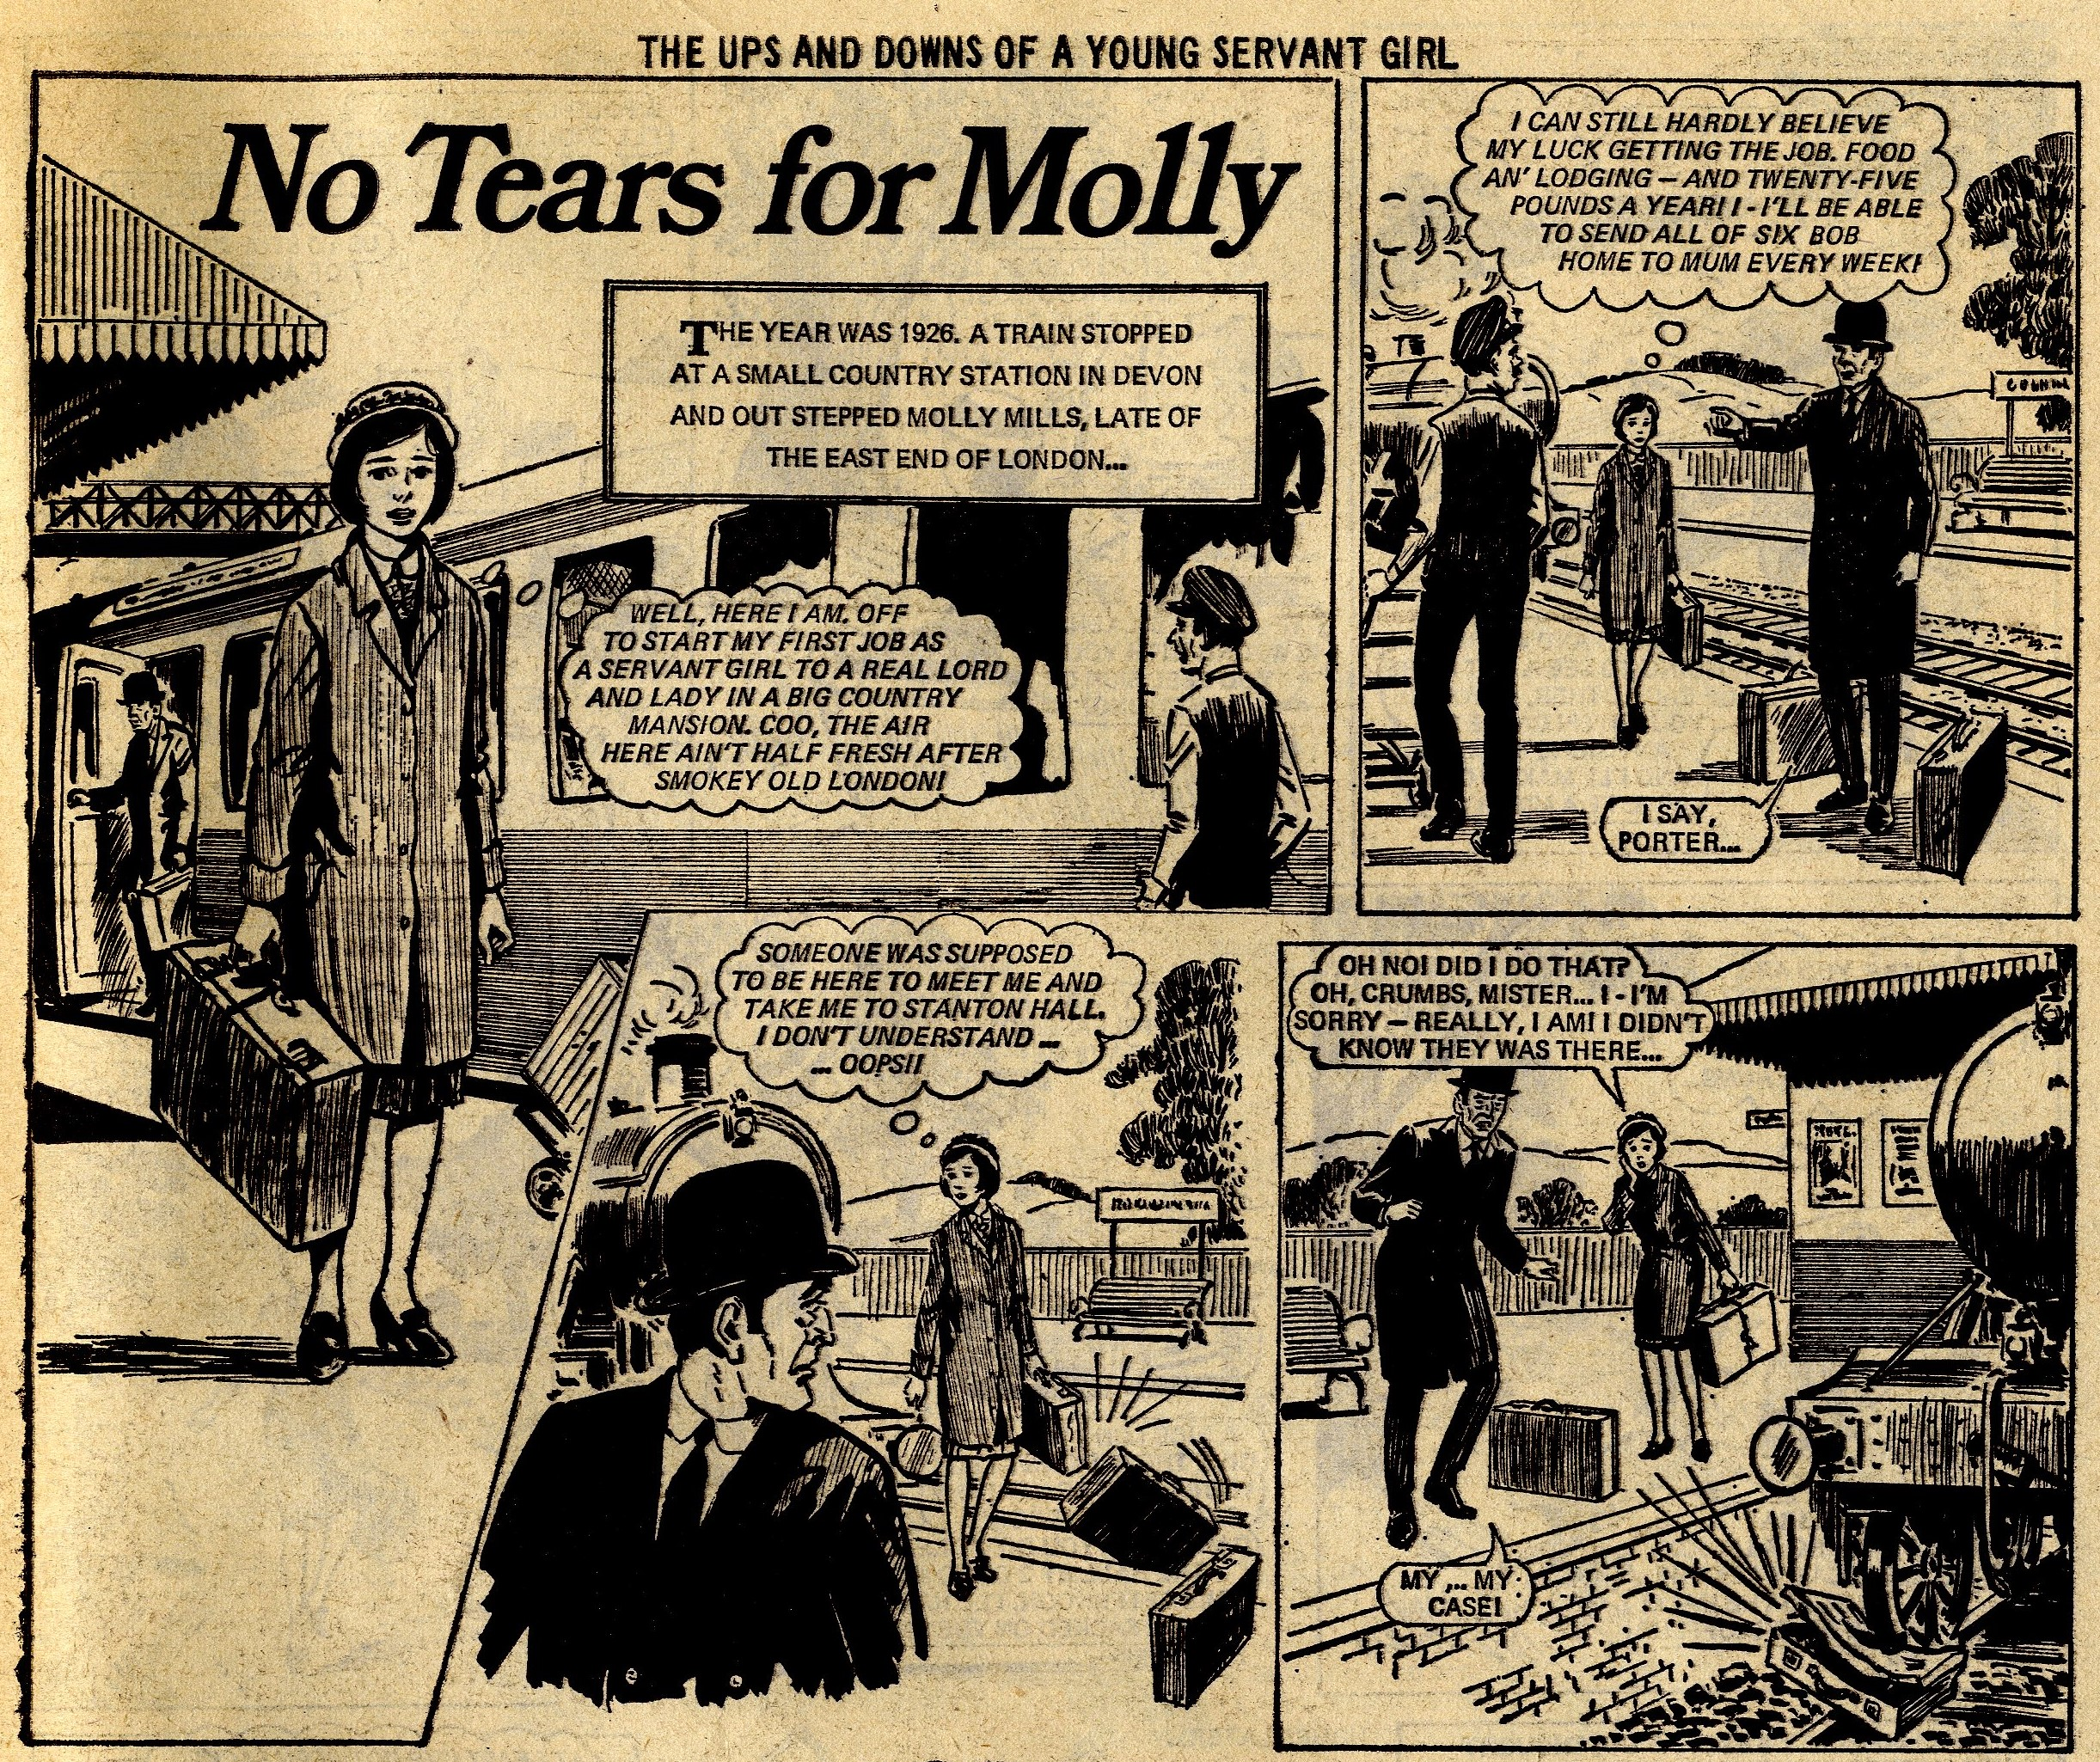 No Tears for Molly: Maureen Spurgeon (writer), Tony Thewennetti (artist)